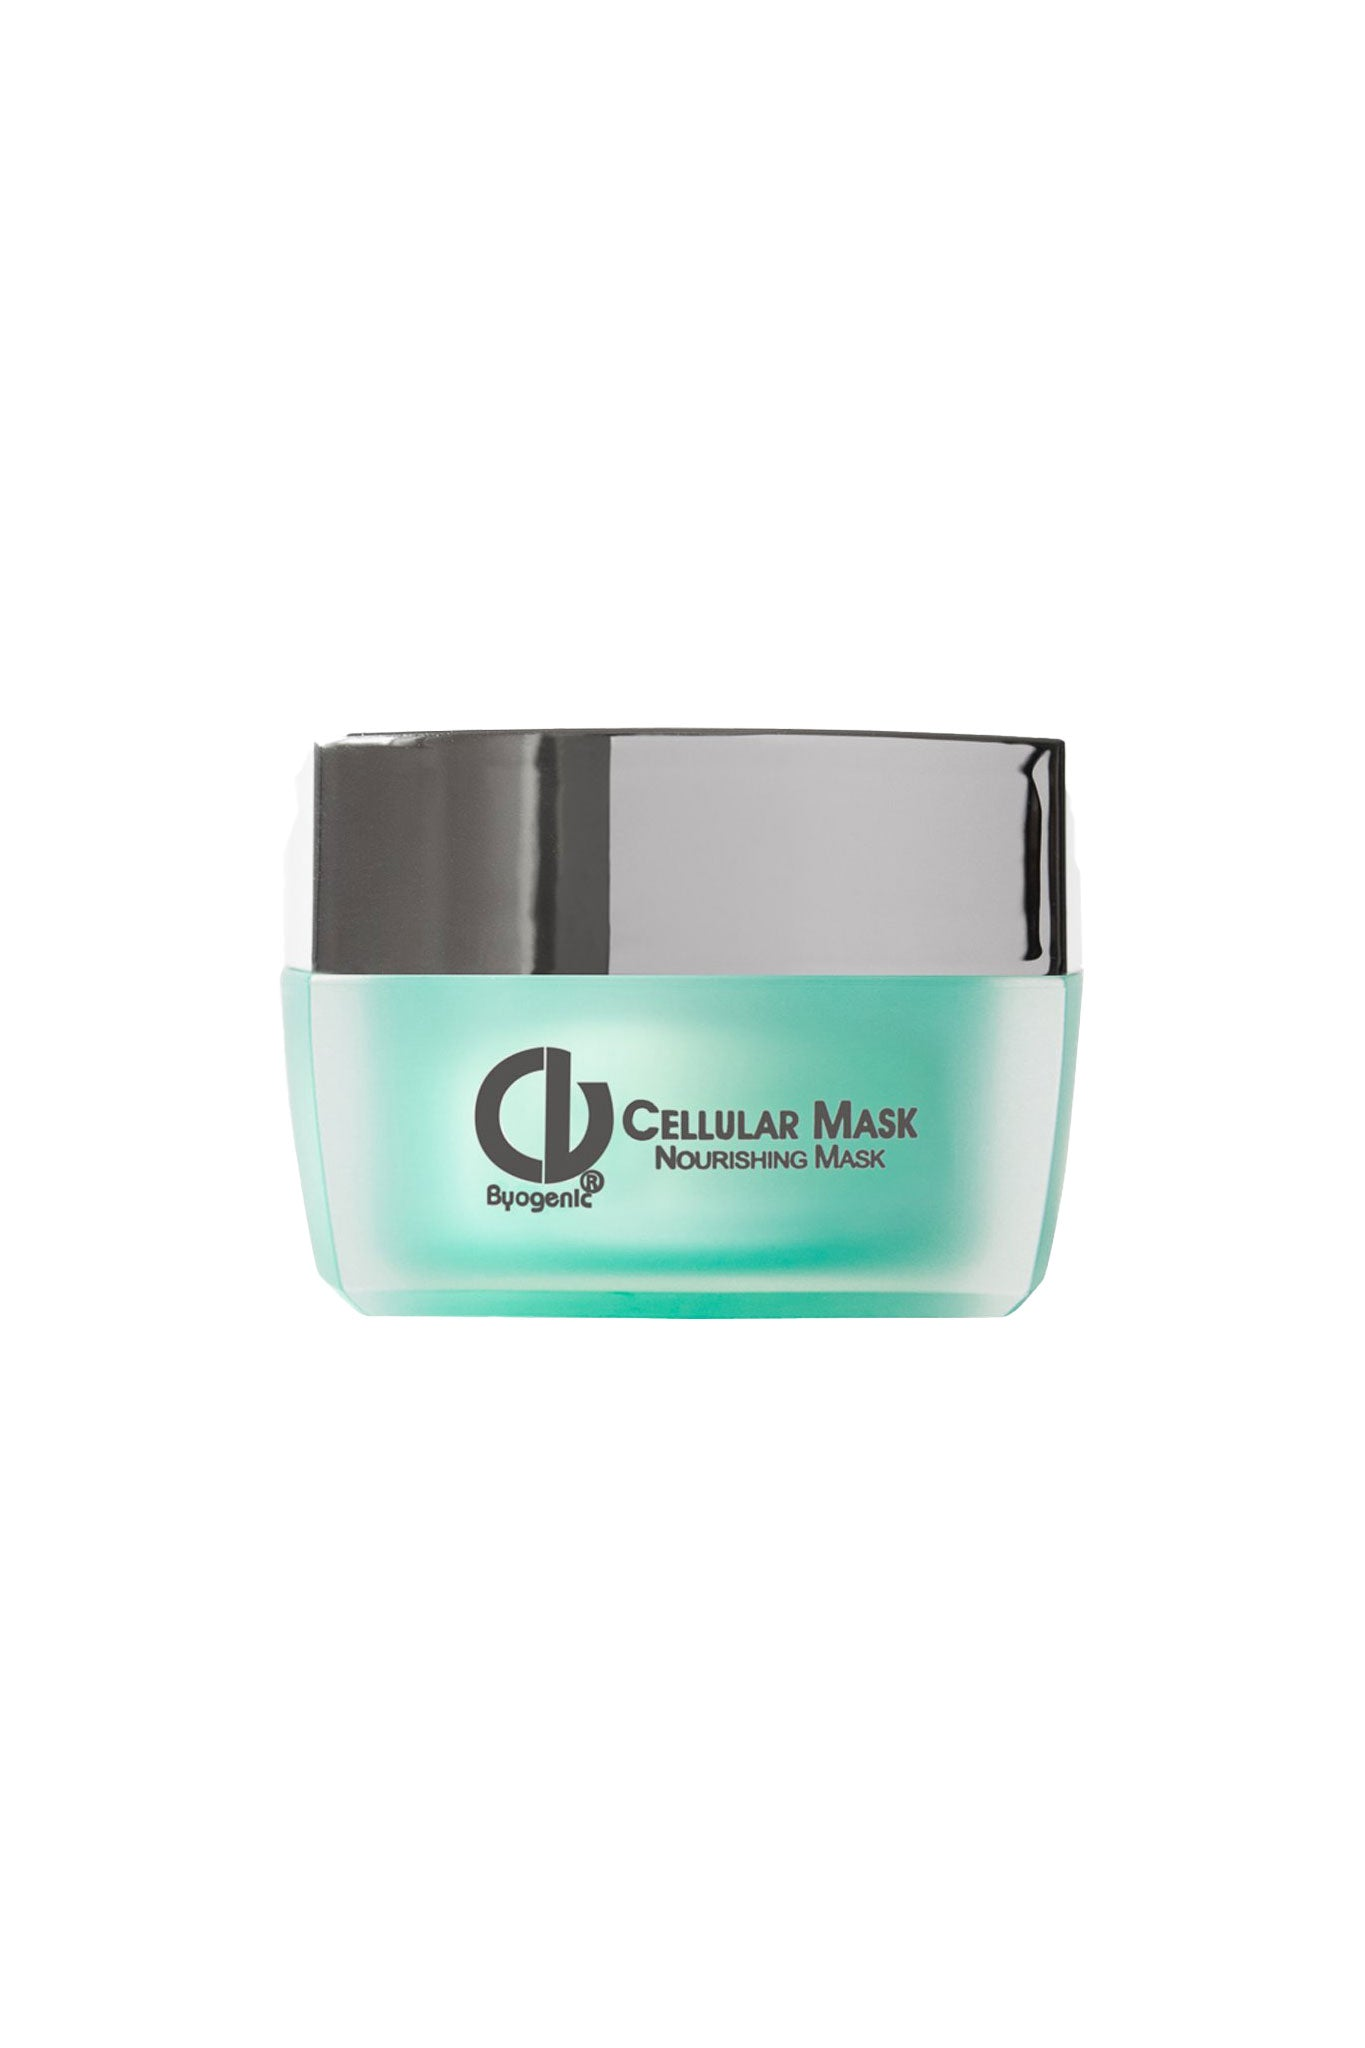 Christine Valmy Cellular Mask, hydrating mask for dry skin.